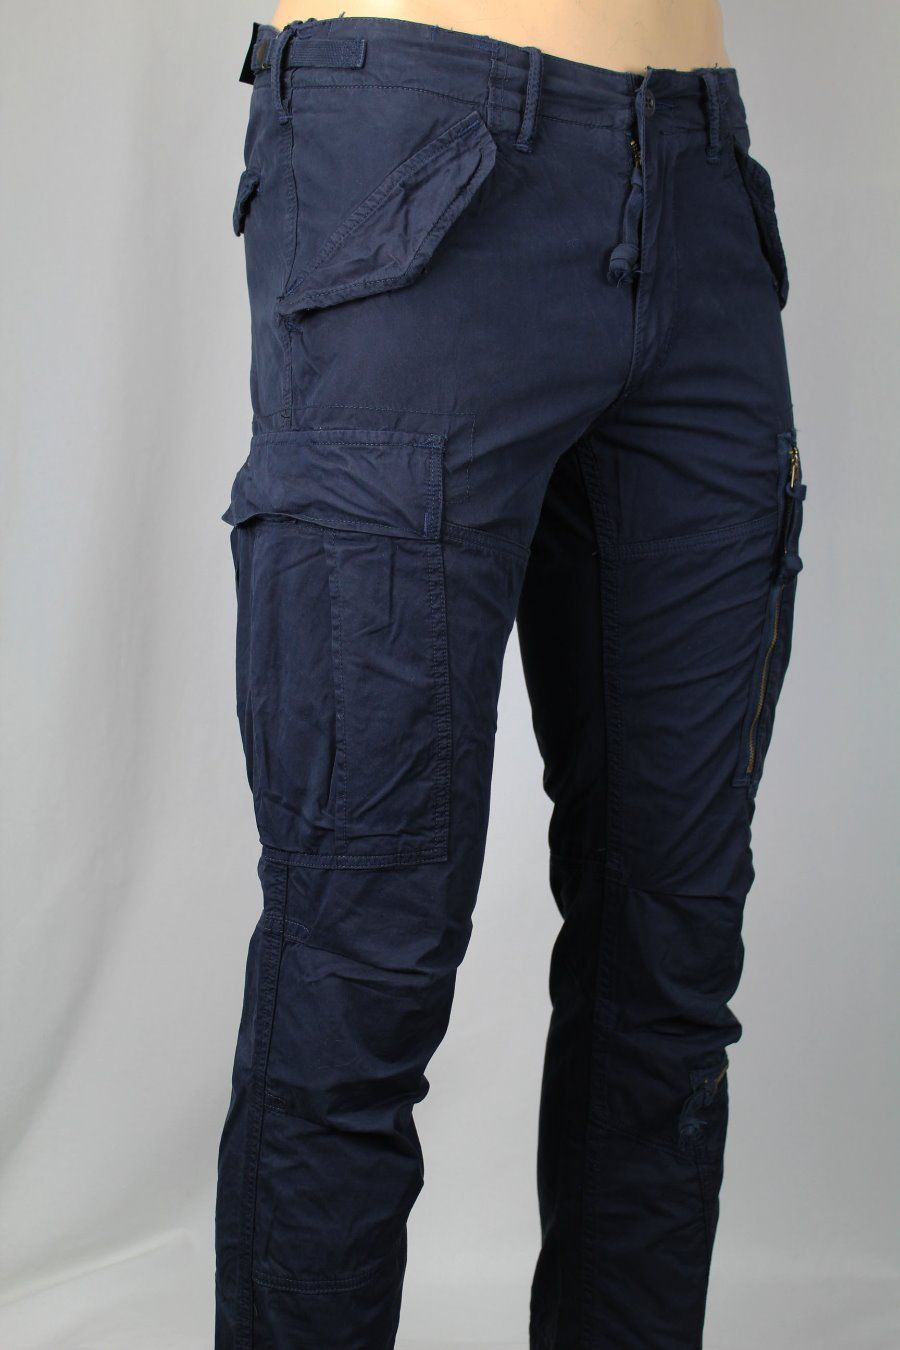 Navy Fit Nwt Straight Zip Ralph Polo Blue Cargo Lauren Pants Snaps QECdBoxeWr